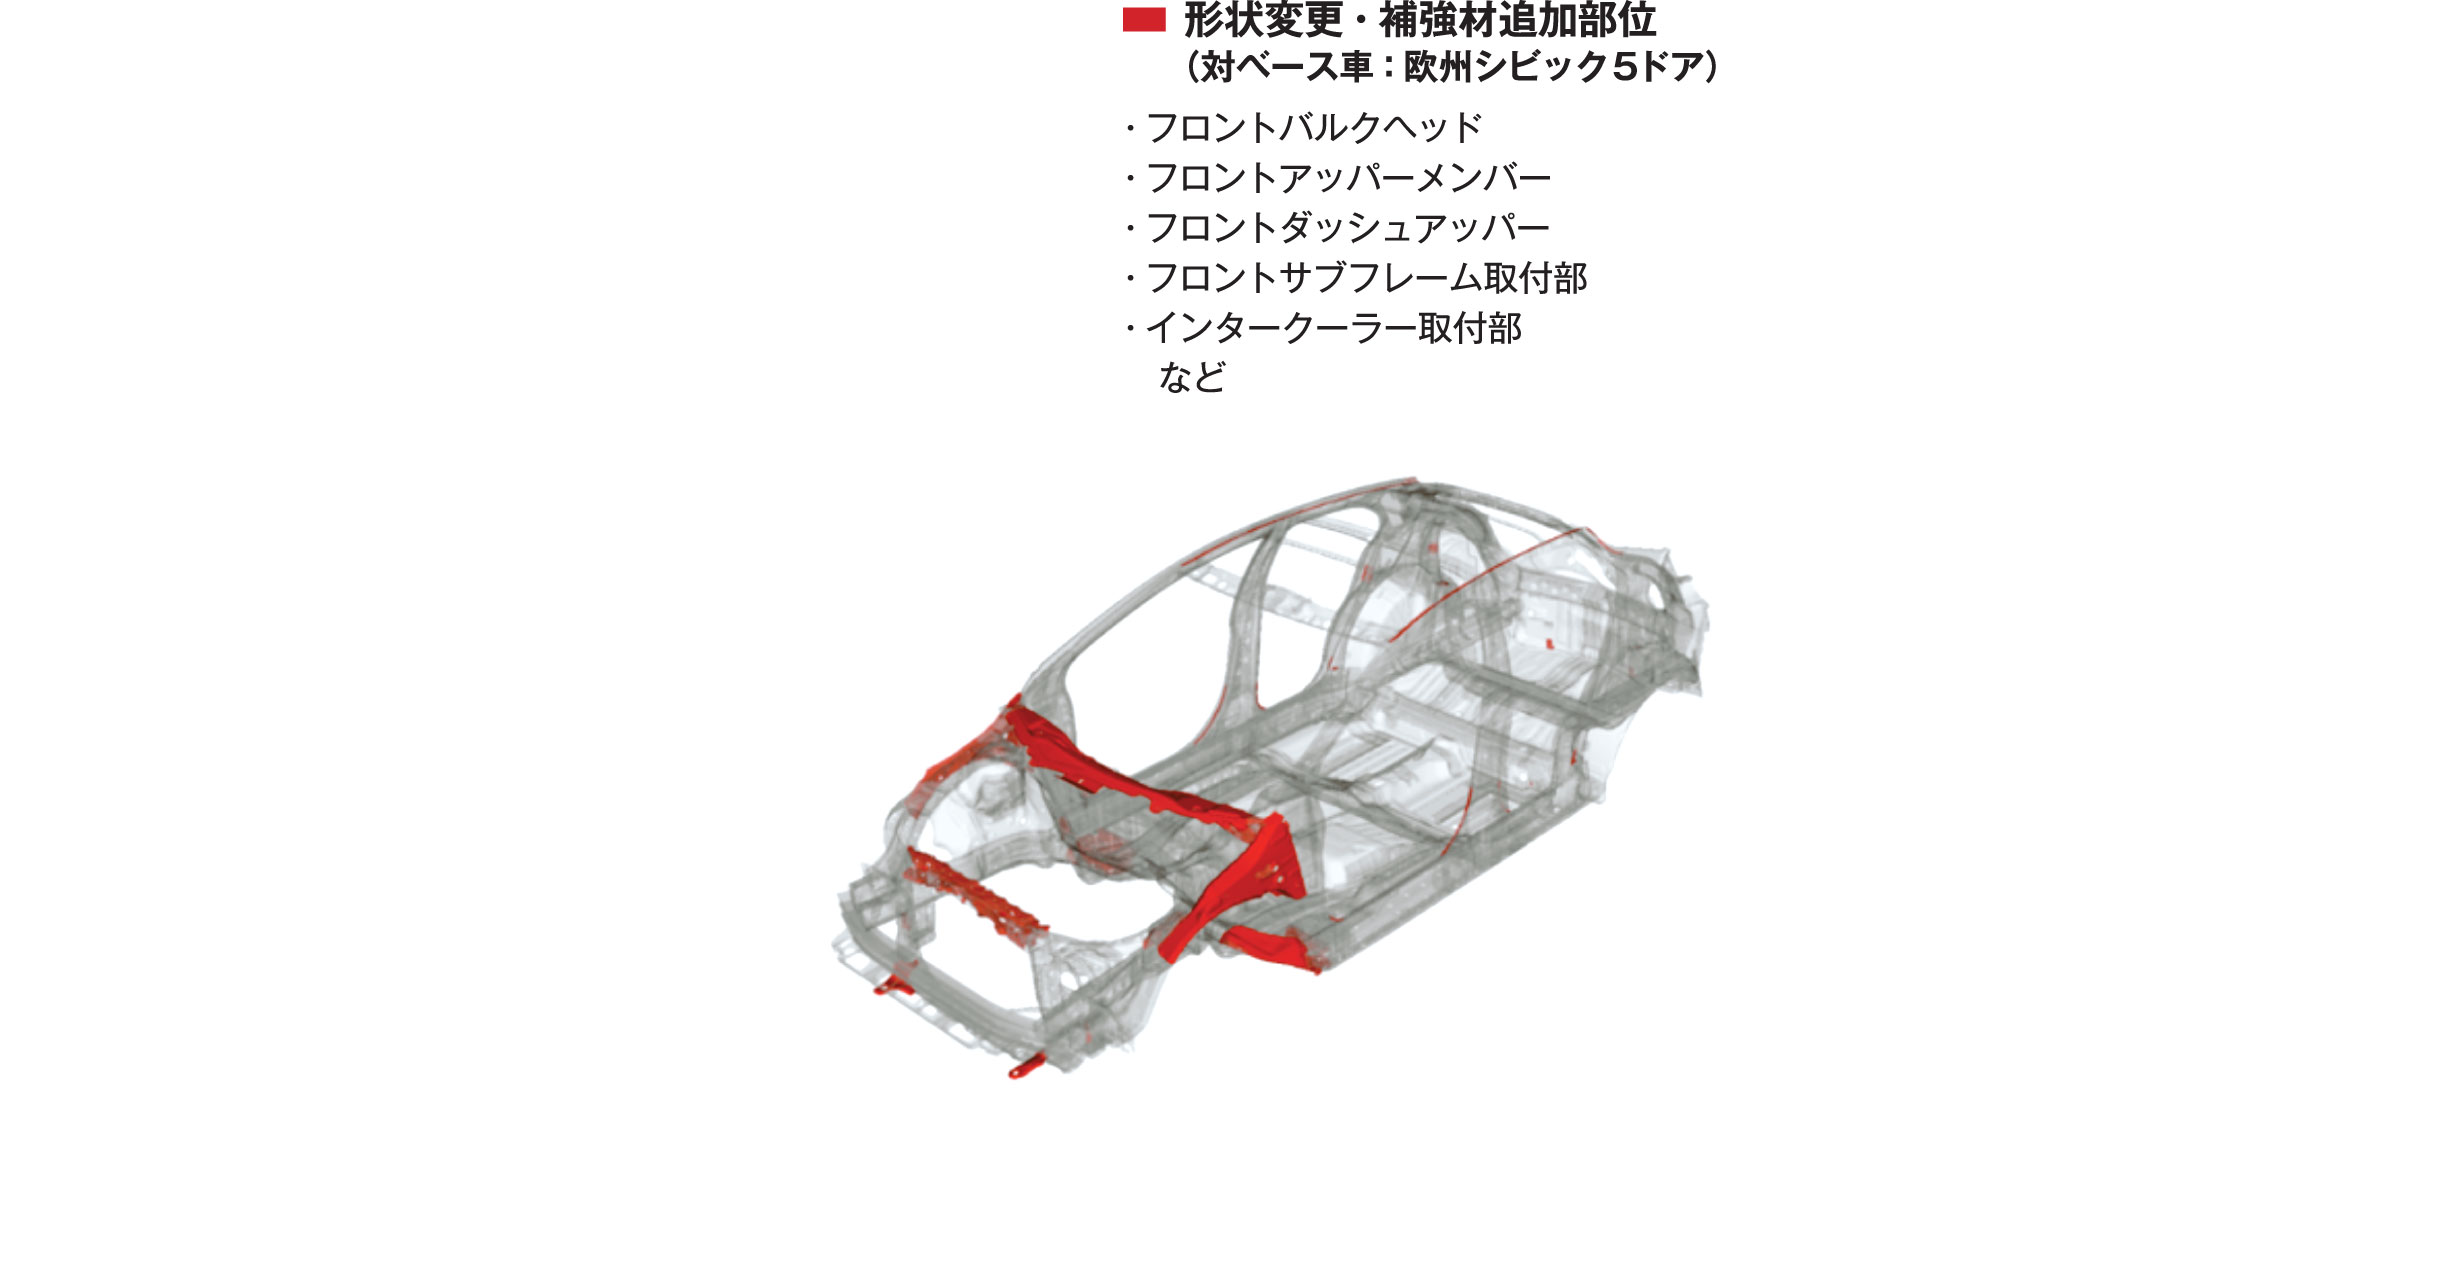 4151028 Civic 091 further Pitter also Ferrari Enzo likewise Catalog Civictyperfk8 in addition Watch. on 2017 honda civic type r